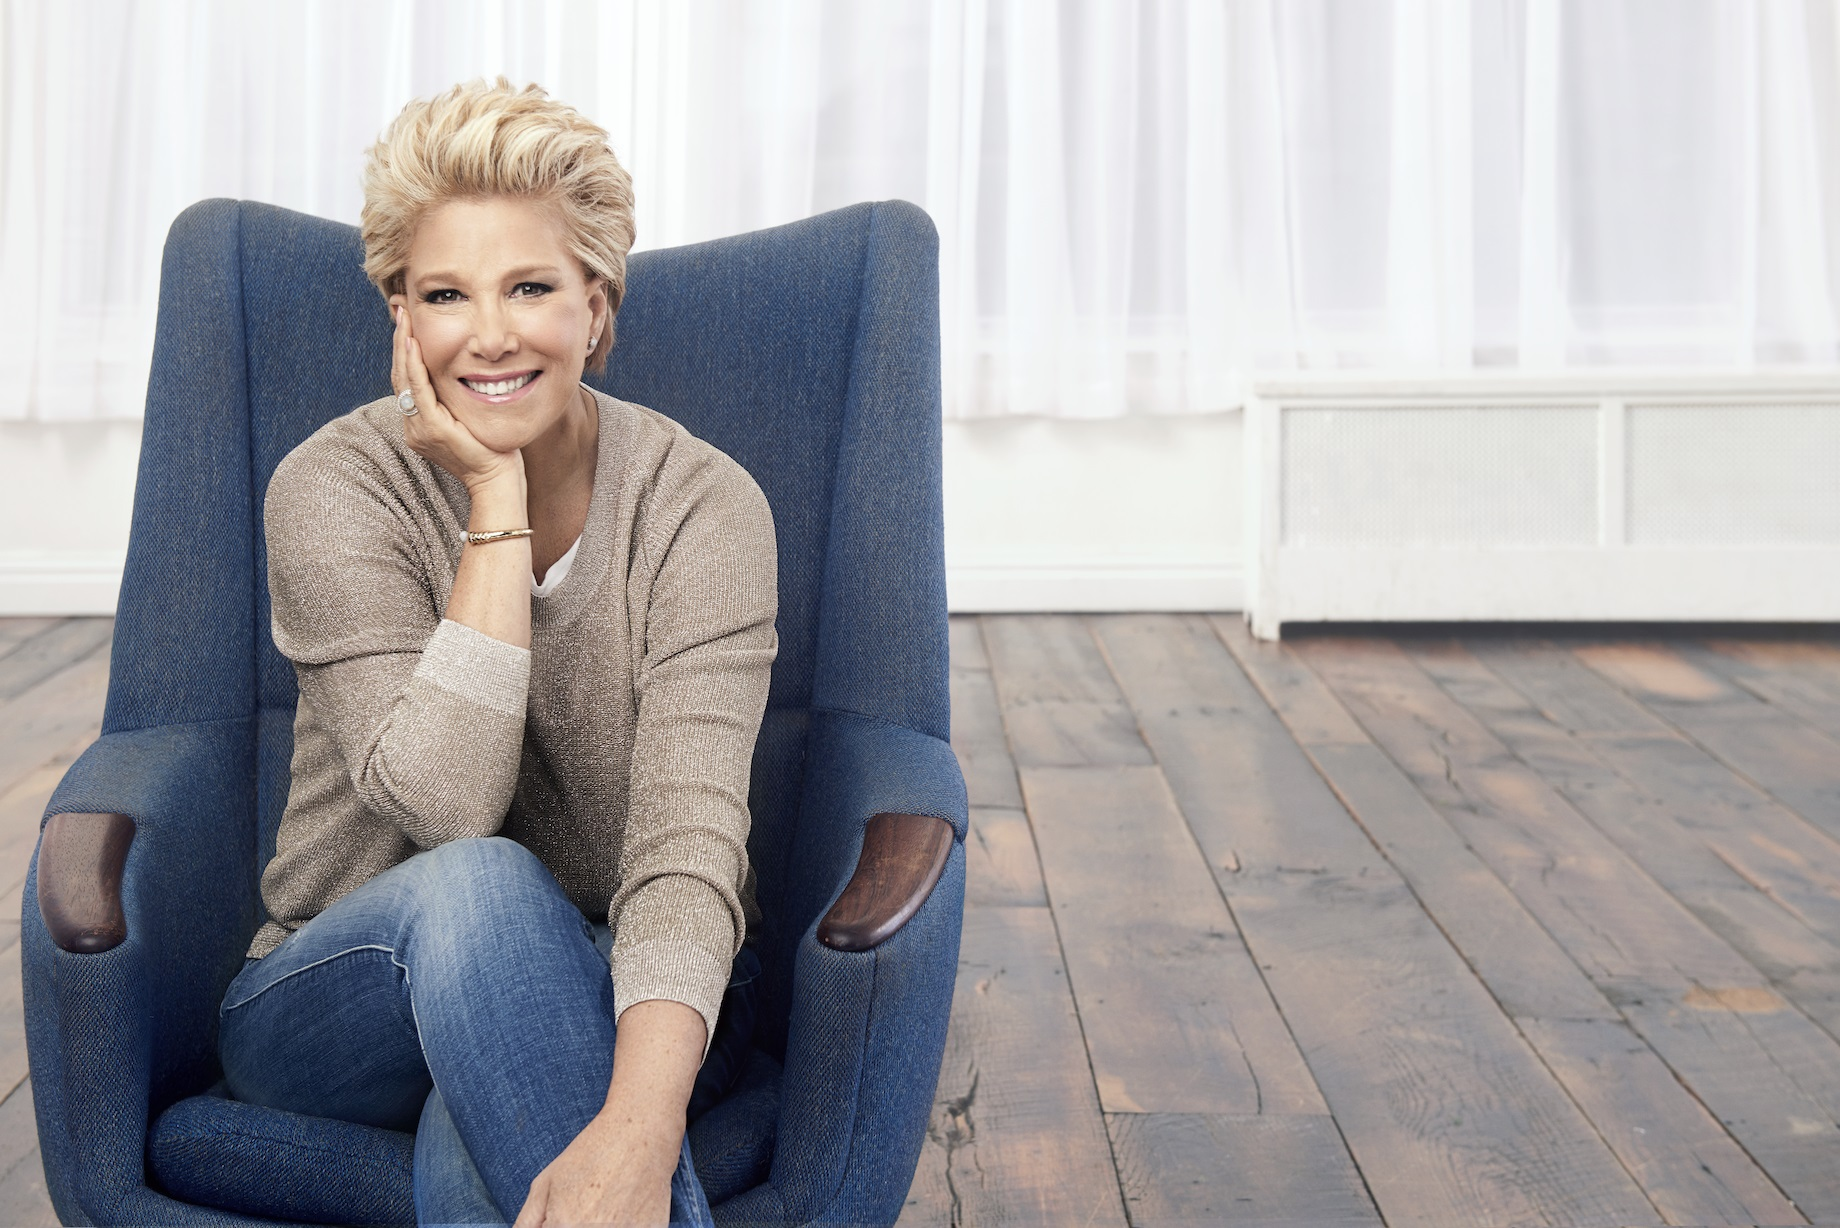 Joan Lunden, Executive Speakers Bureau